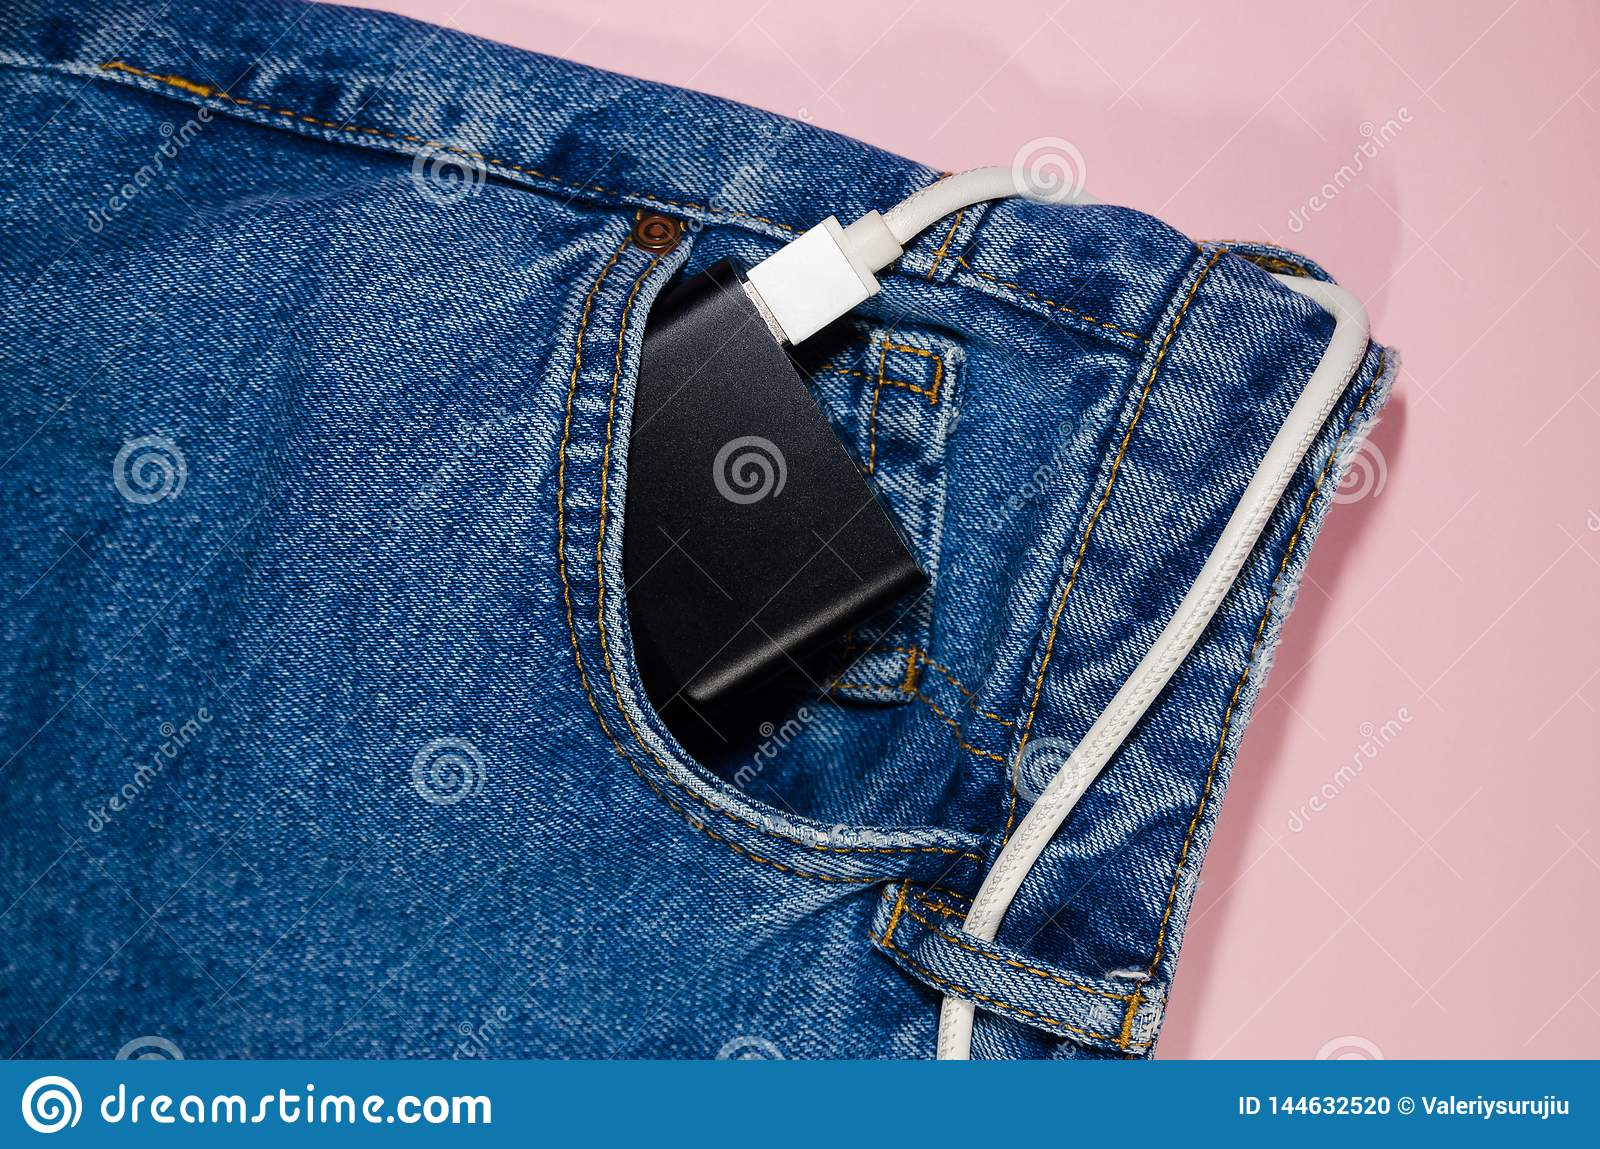 Power bank in jeans